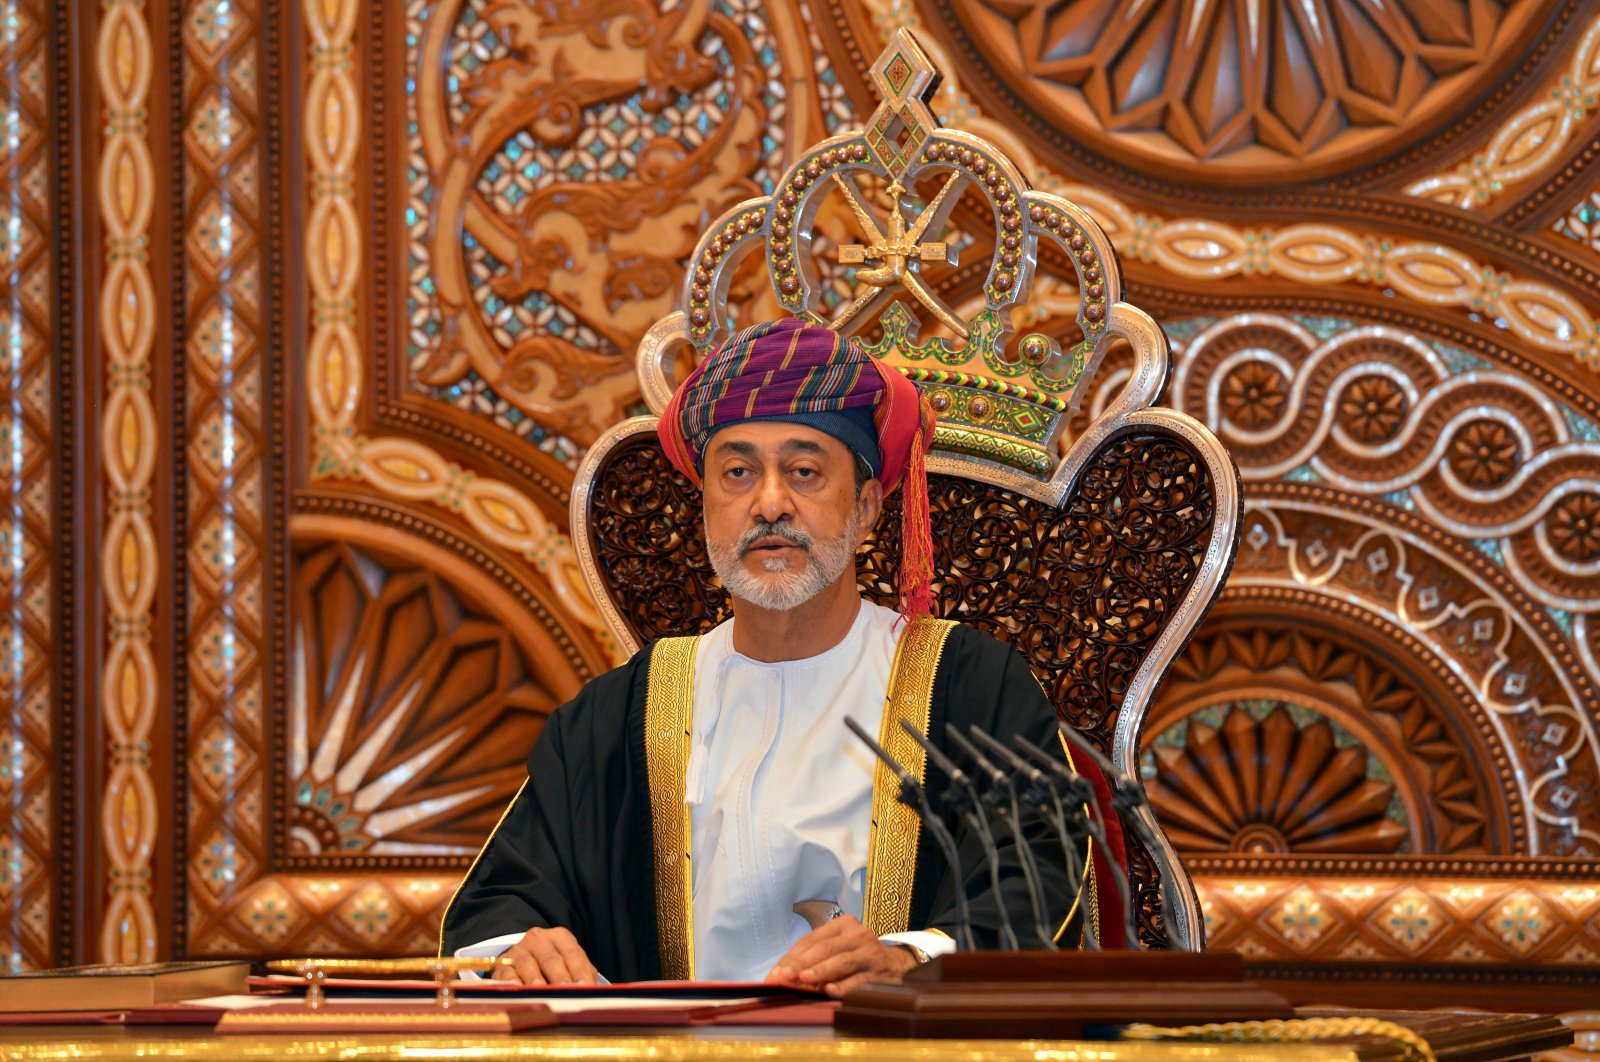 Sultan Haitham bin Tariq Al Said gives a speech after being sworn in before the royal family council in Muscat, Oman, Jan. 11, 2020. (Reuters)